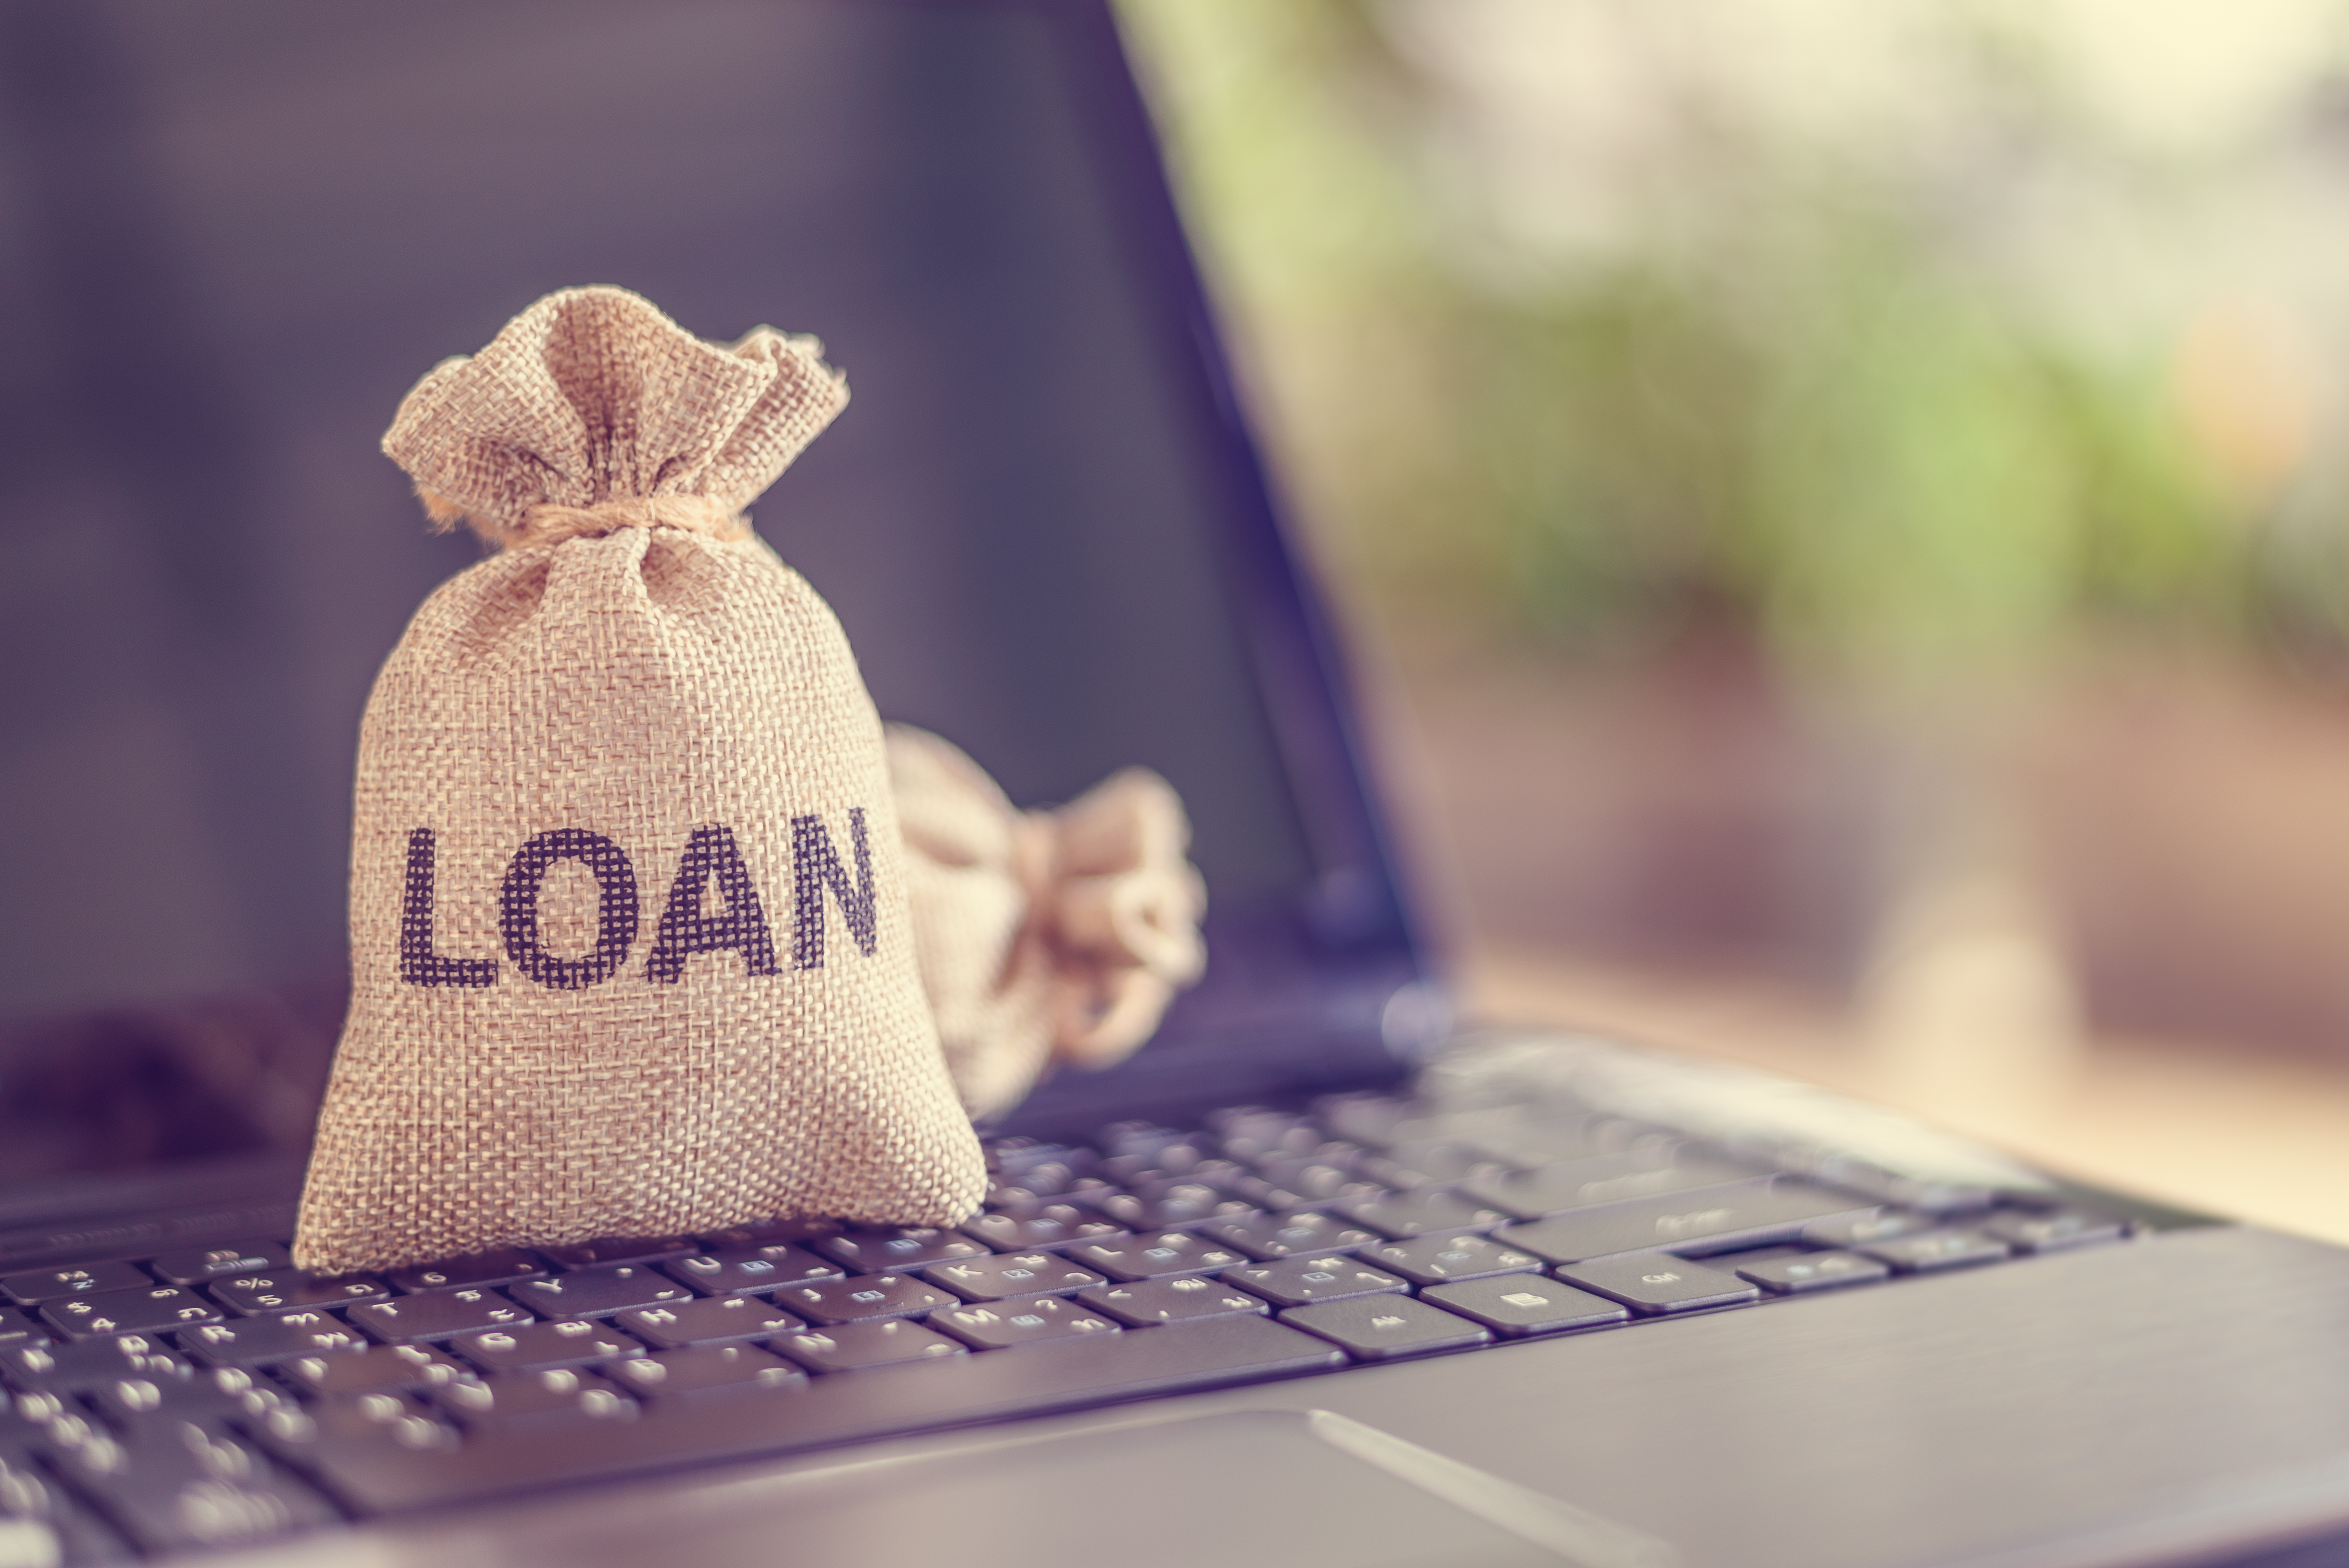 Depicting peer-to-peer lending, the practice of lending money to individual or business via online service among lenders and borrowers